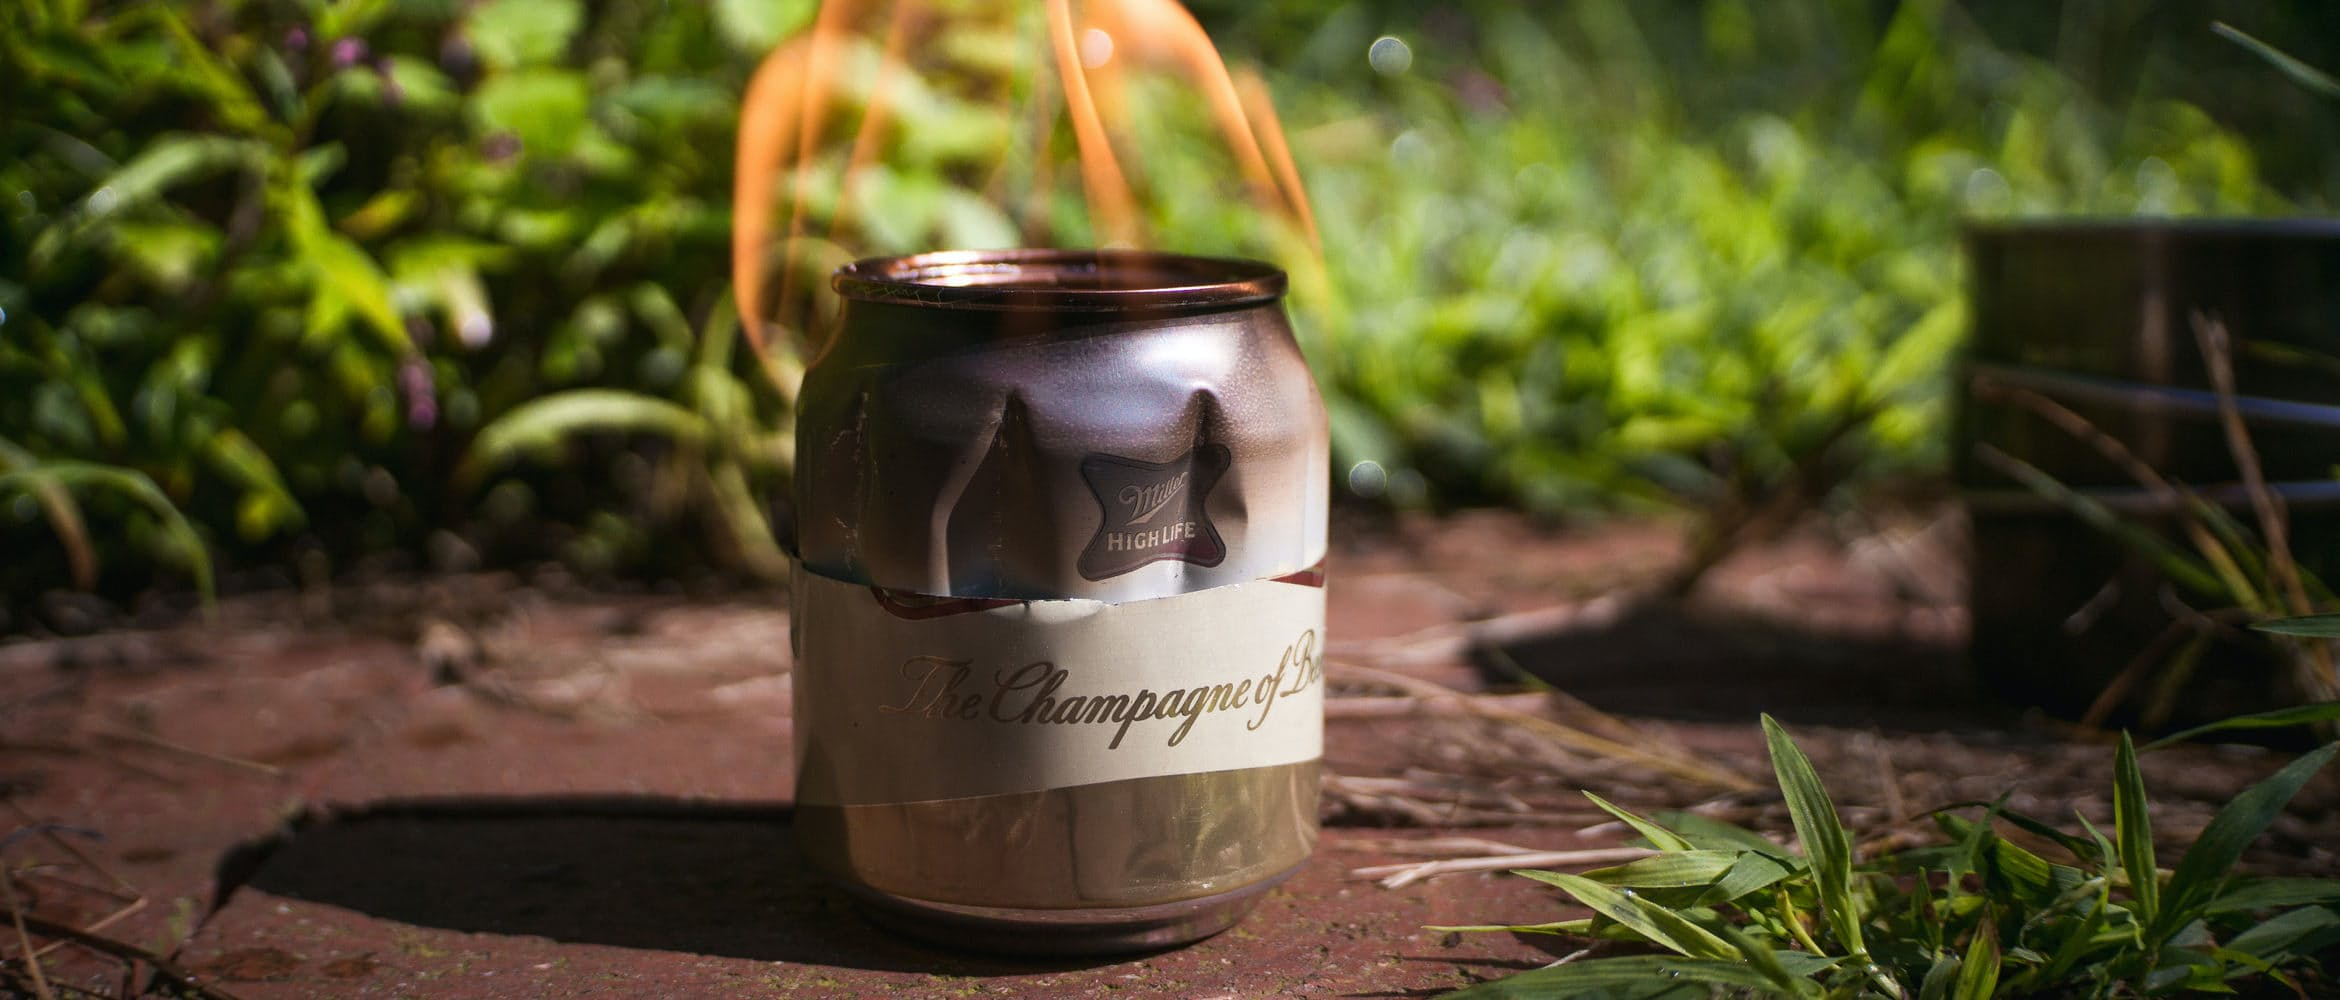 Featured 2x beer can camp stove banner.jpg?ixlib=rails 2.1